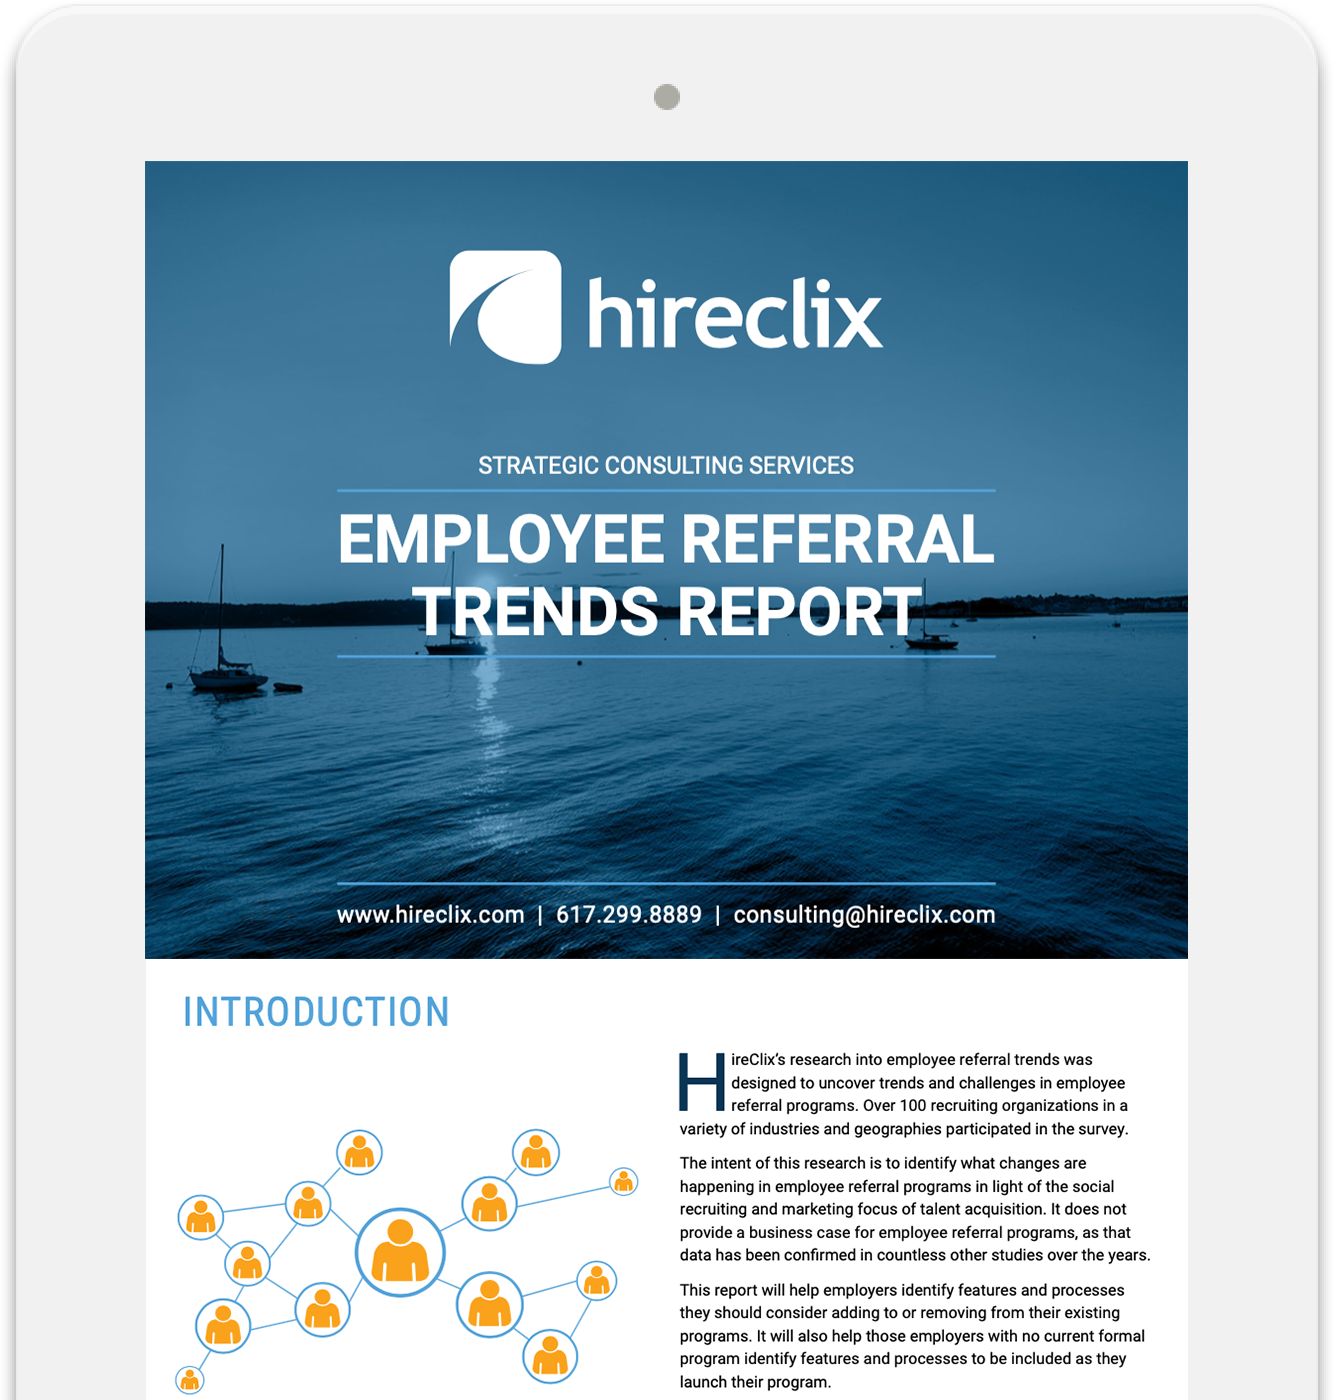 Employee Referral Trends Report